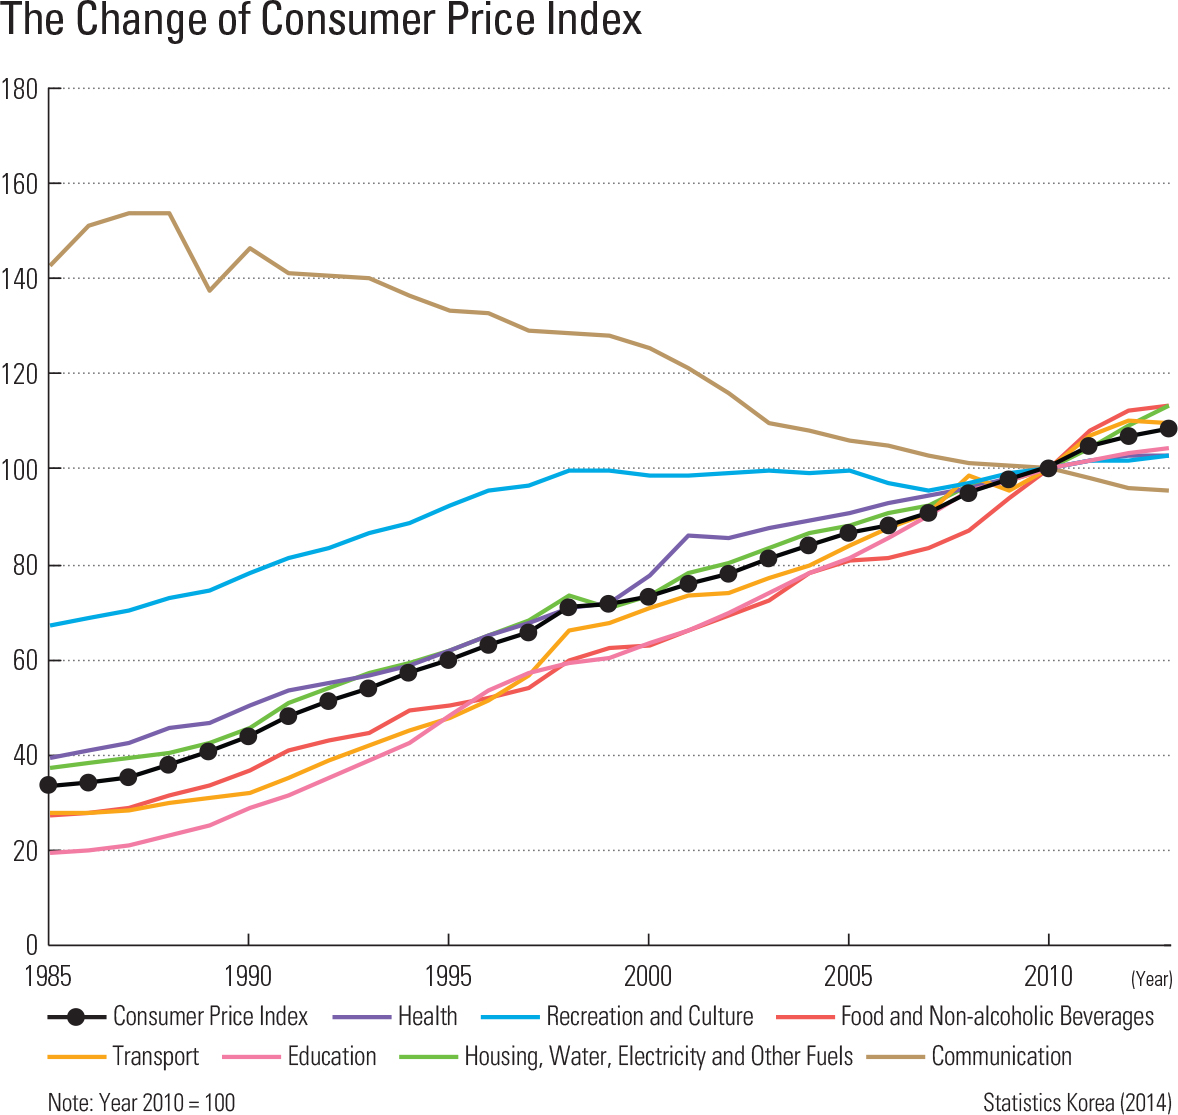 The Change of Consumer Price Index